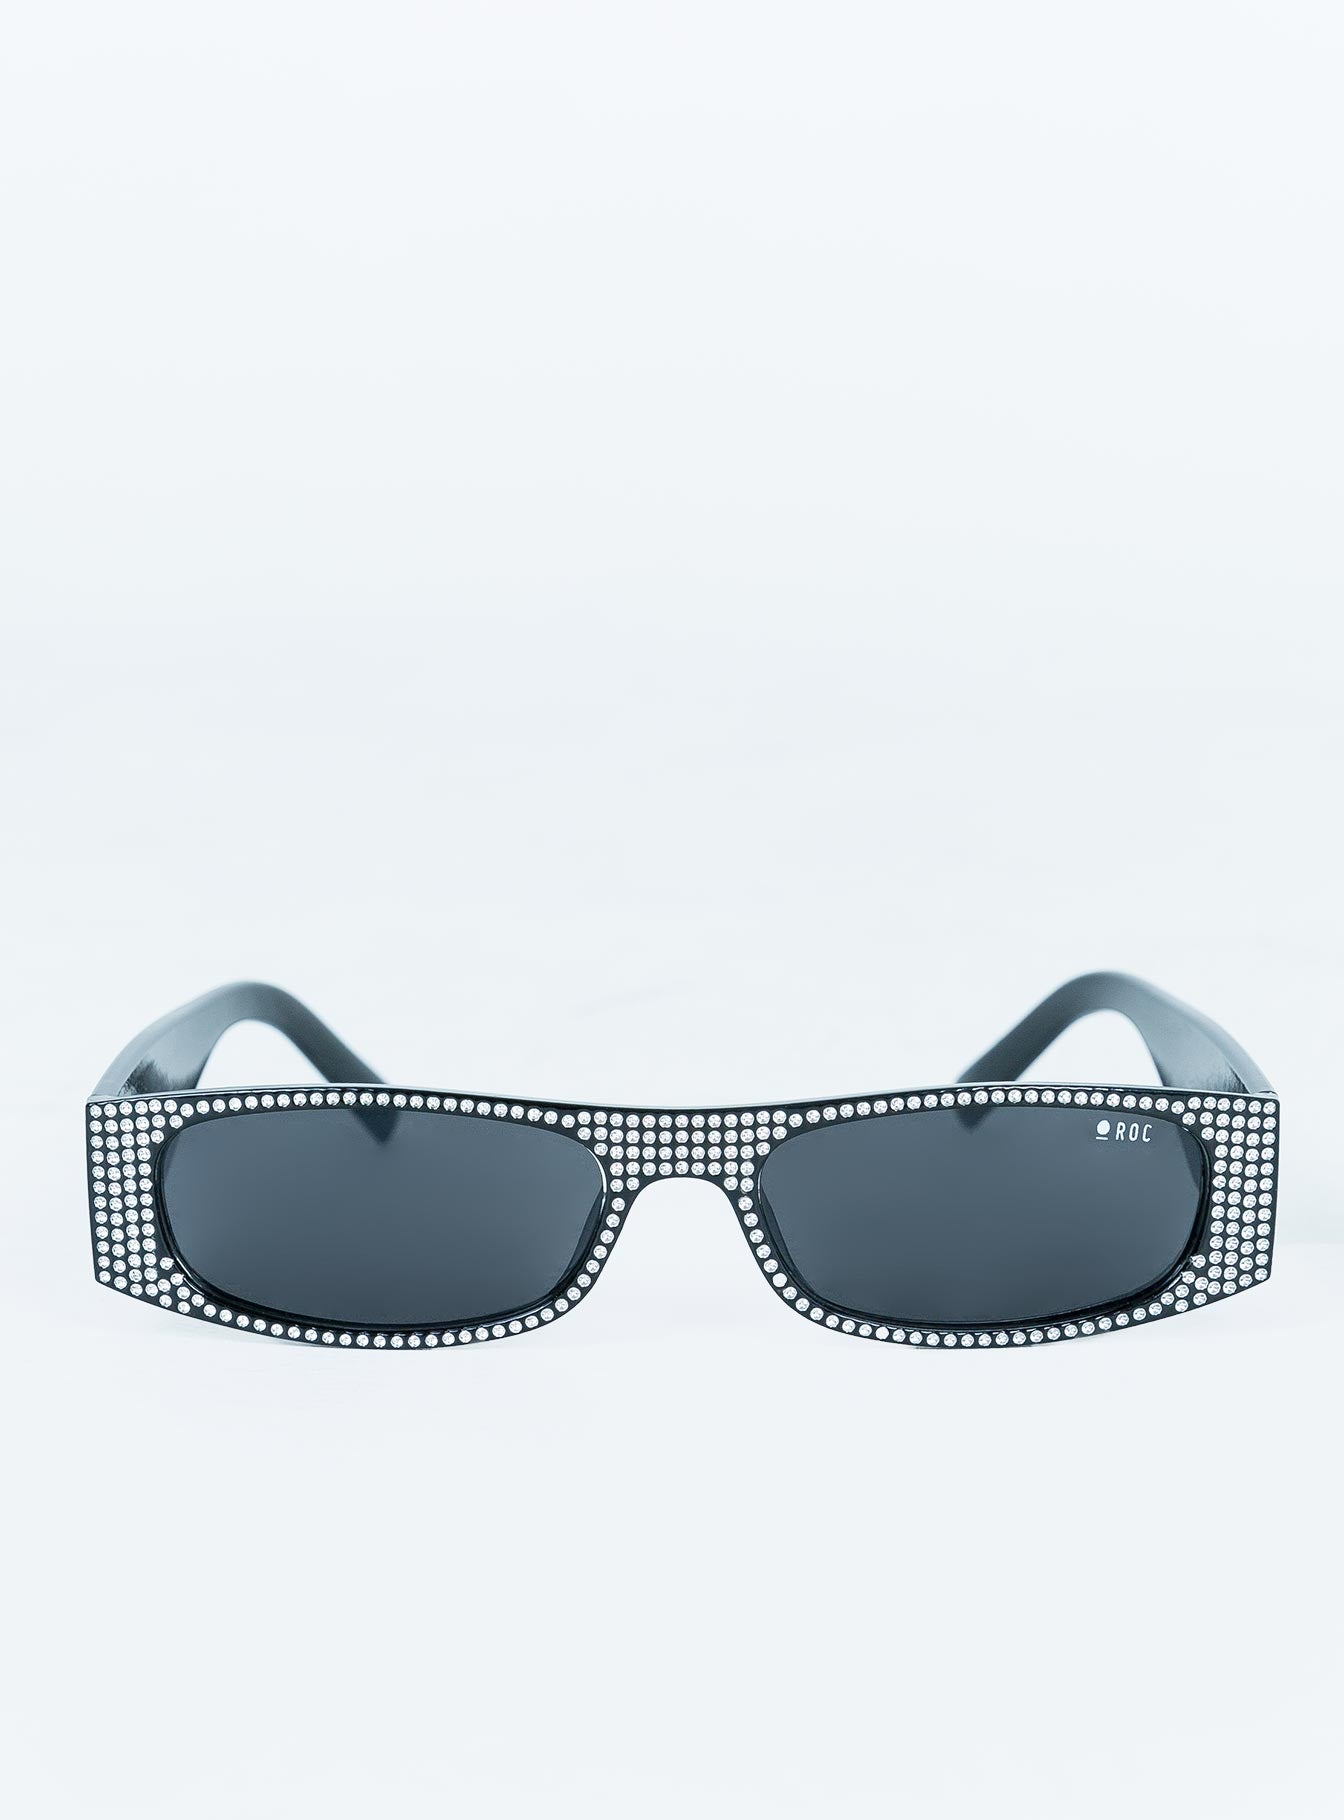 Funlist Sunglasses